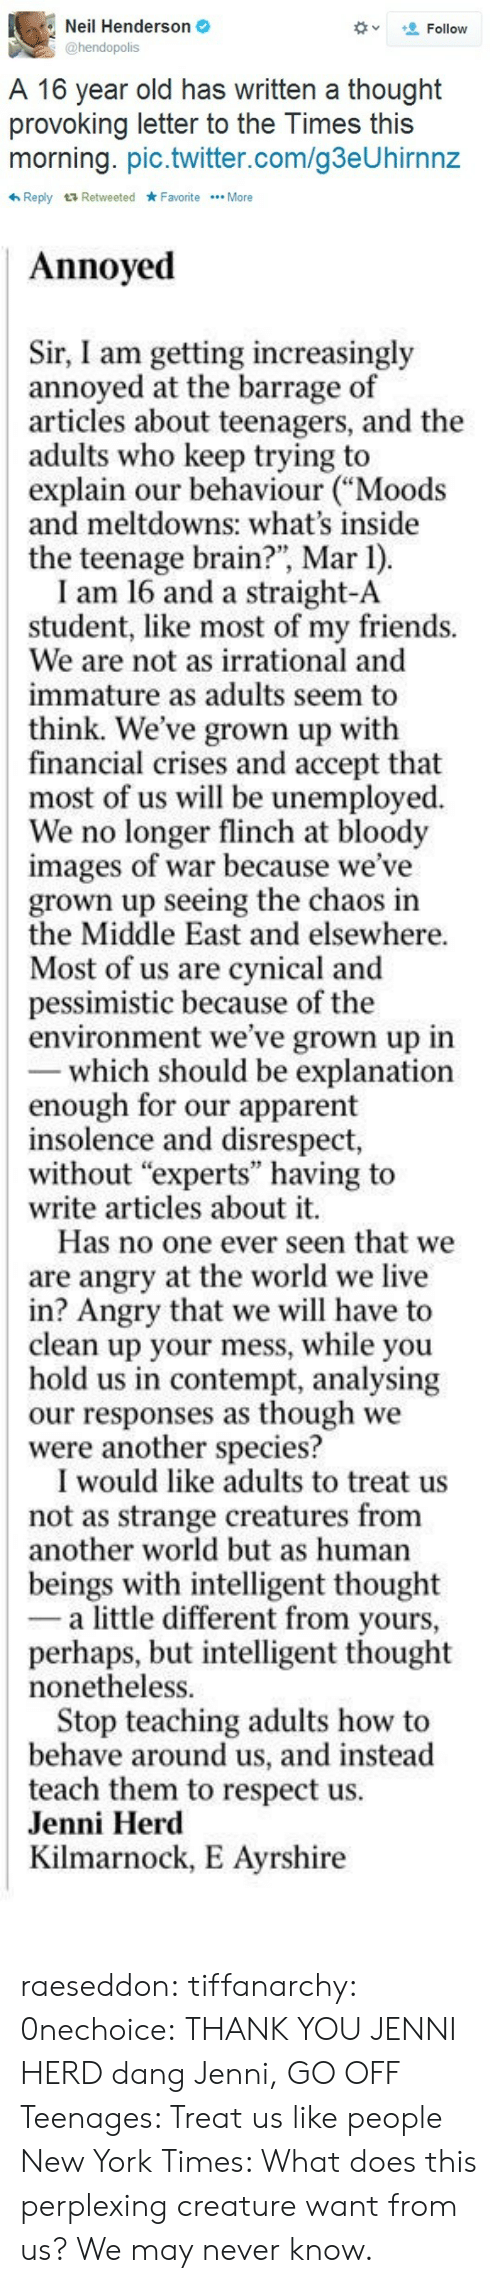 "apparent: Neil Henderson  @hendopolis  Follow  A 16 year old has written a thought  provoking letter to the Times this  morning. pic.twitter.com/g3eUhirnnz  わReply Retweeted ★Favorite More   Annoyed  Sir, I am getting increasingly  annoyed at the barrage of  articles about teenagers, and the  adults who keep trying to  explain our behaviour ""Moods  and meltdowns: what's inside  the teenage brain?, Mar 1)  I am 16 and a straight-A  student, like most of my friends.  We are not as irrational and  immature as adults seem to  think. We've grown up with  financial crises and accept that  most of us will be unemployed  We no longer flinch at bloody  images of war because we've  grown up seeing the chaos in  the Middle East and elsewhere  Most of us are cynical and  pessimistic because of the  environment we've grown up in  which should be explanation  enough for our apparent  insolence and disrespect,  without ""experts"" having to  write articles about it.  Has no one ever seen that we  are angry at the world we live  in? Angry that we will have to  clean up your mess, while you  hold us in contempt, analysing  our responses as though we  were another species?  I would like adults to treat us  not as strange creatures from  other world but as human  beings with intelligent thought  - a little different from yours,  perhaps, but intelligent thought  nonetheless  Stop teaching adults how to  behave around us, and instead  teach them to respect us  Jenni Herd  Kilmarnock, E Ayrshire raeseddon:  tiffanarchy:  0nechoice:  THANK YOU JENNI HERD   dang Jenni, GO OFF   Teenages: Treat us like people New York Times: What does this perplexing creature want from us? We may never know."